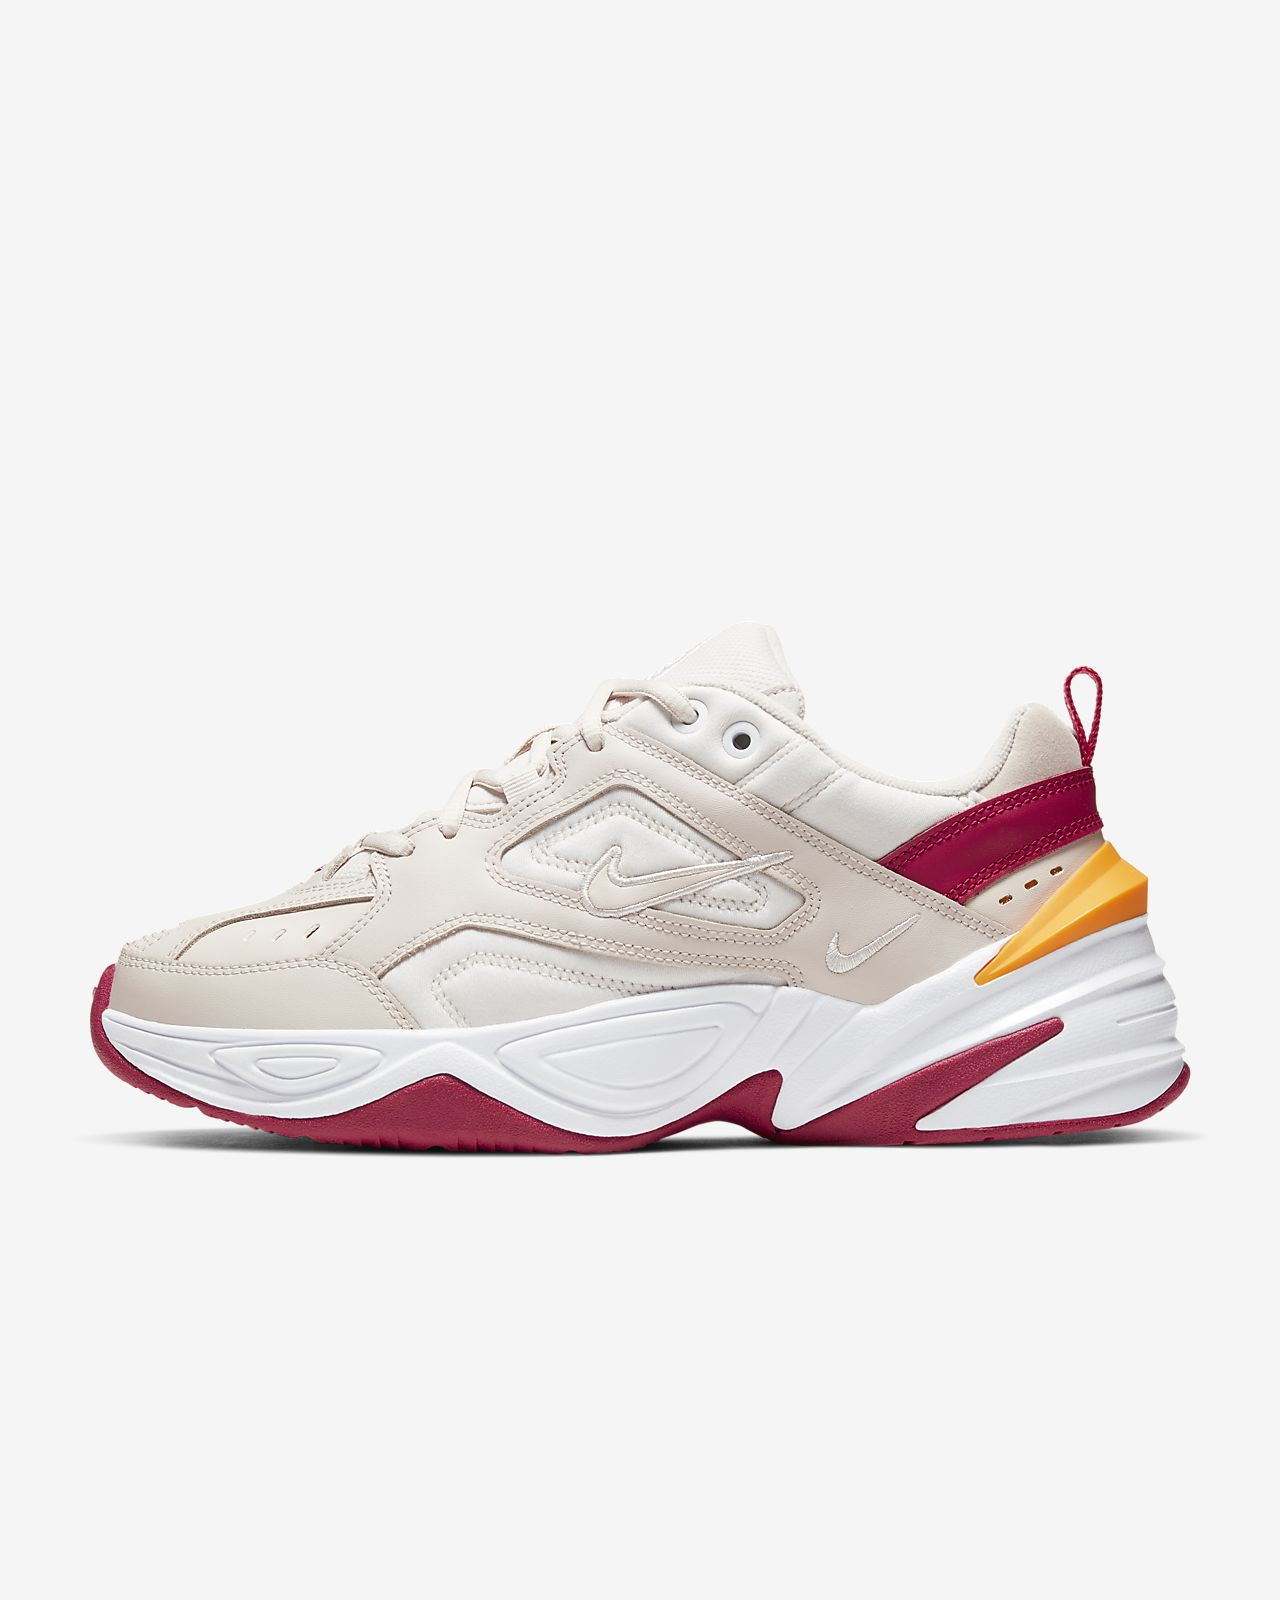 589205a51be3cf Low Resolution Кроссовки Nike M2K Tekno Кроссовки Nike M2K Tekno